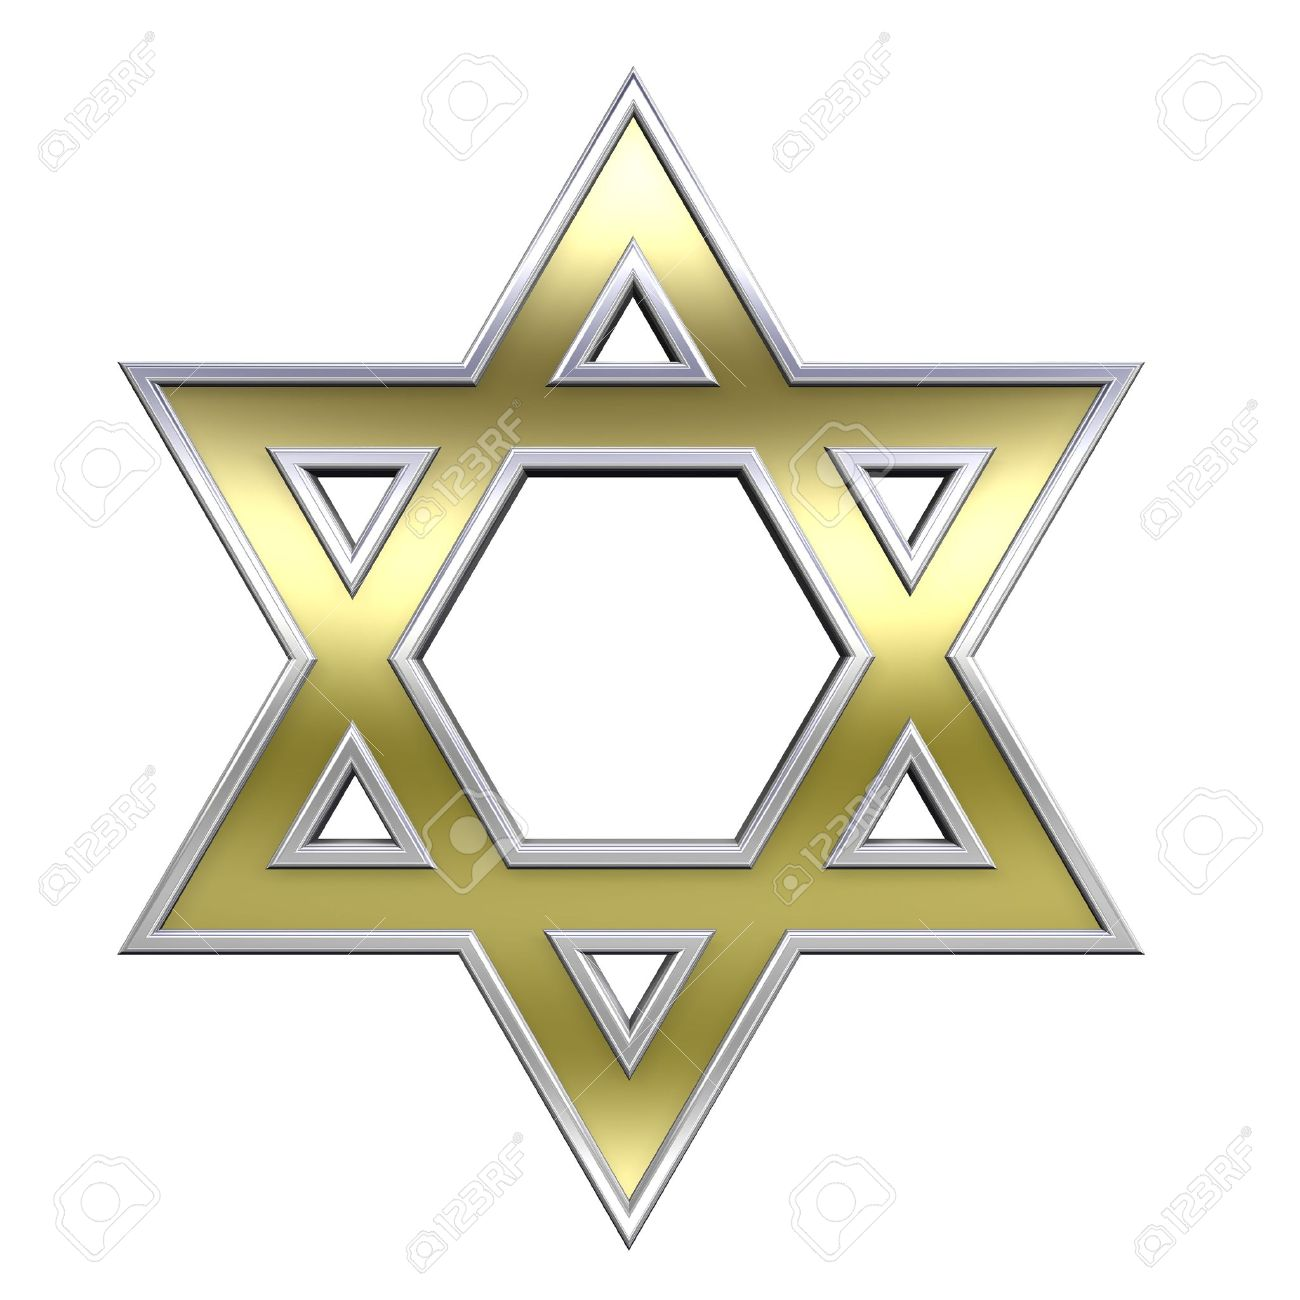 Jewish sacred symbols gallery symbol and sign ideas how awesome are you playbuzz buycottarizona biocorpaavc